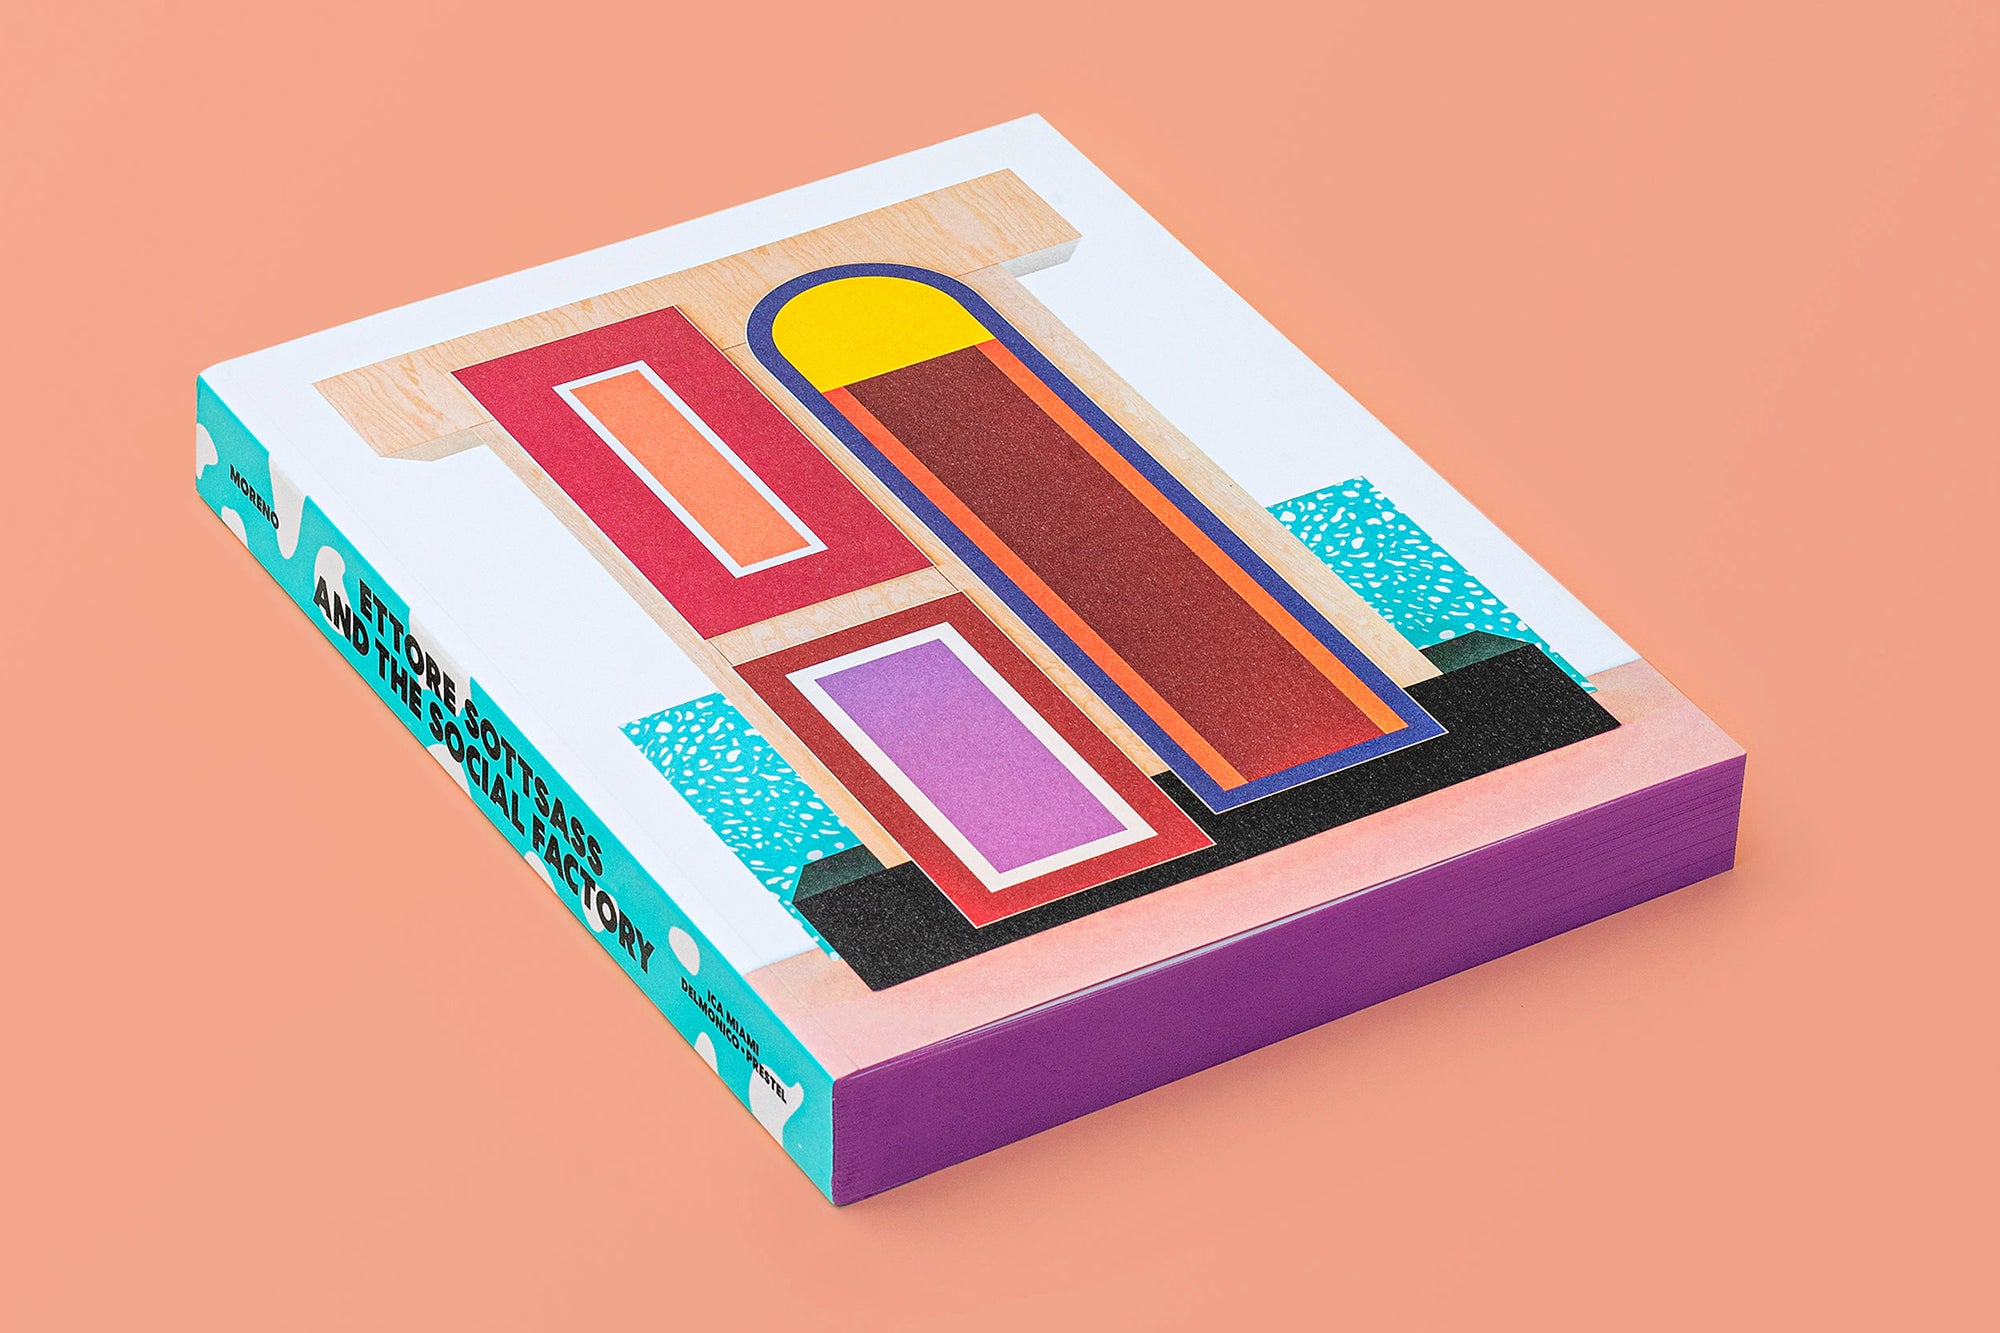 Ettore Sottsass and the Social Factory catalogue. Photo © Breanne Furlong